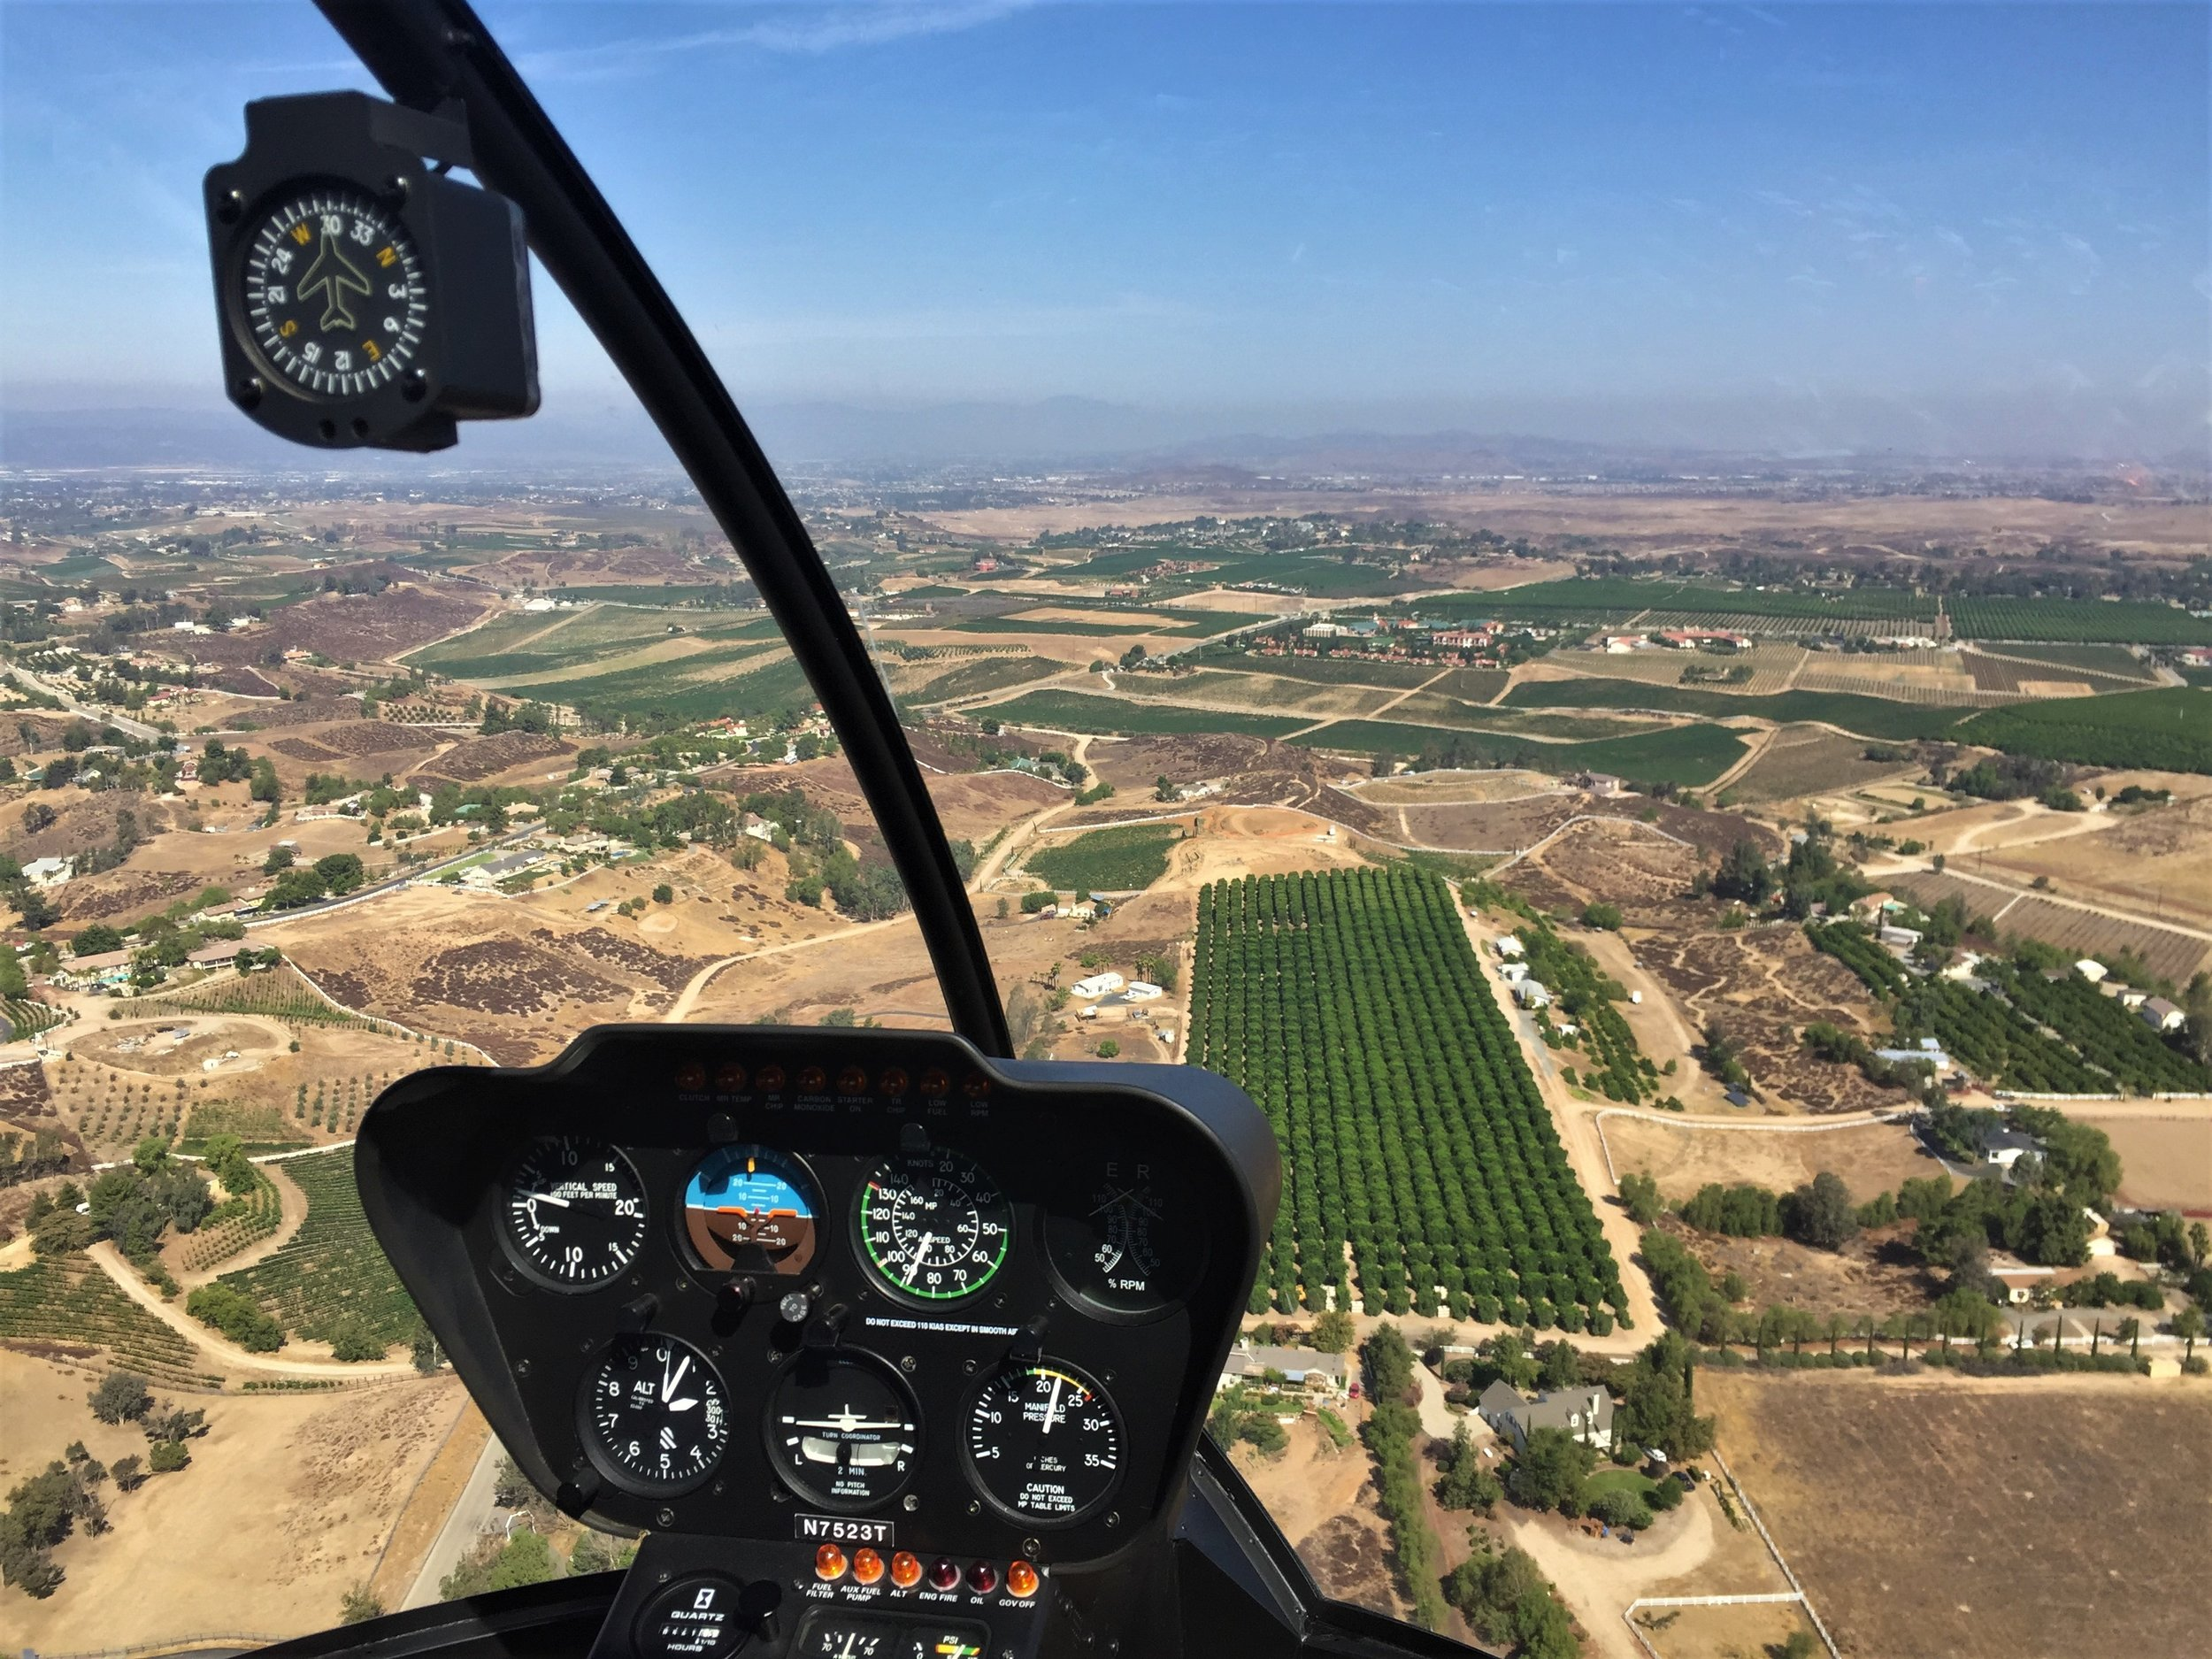 Enjoy the views of Temecula Wine Country on approach to land! -